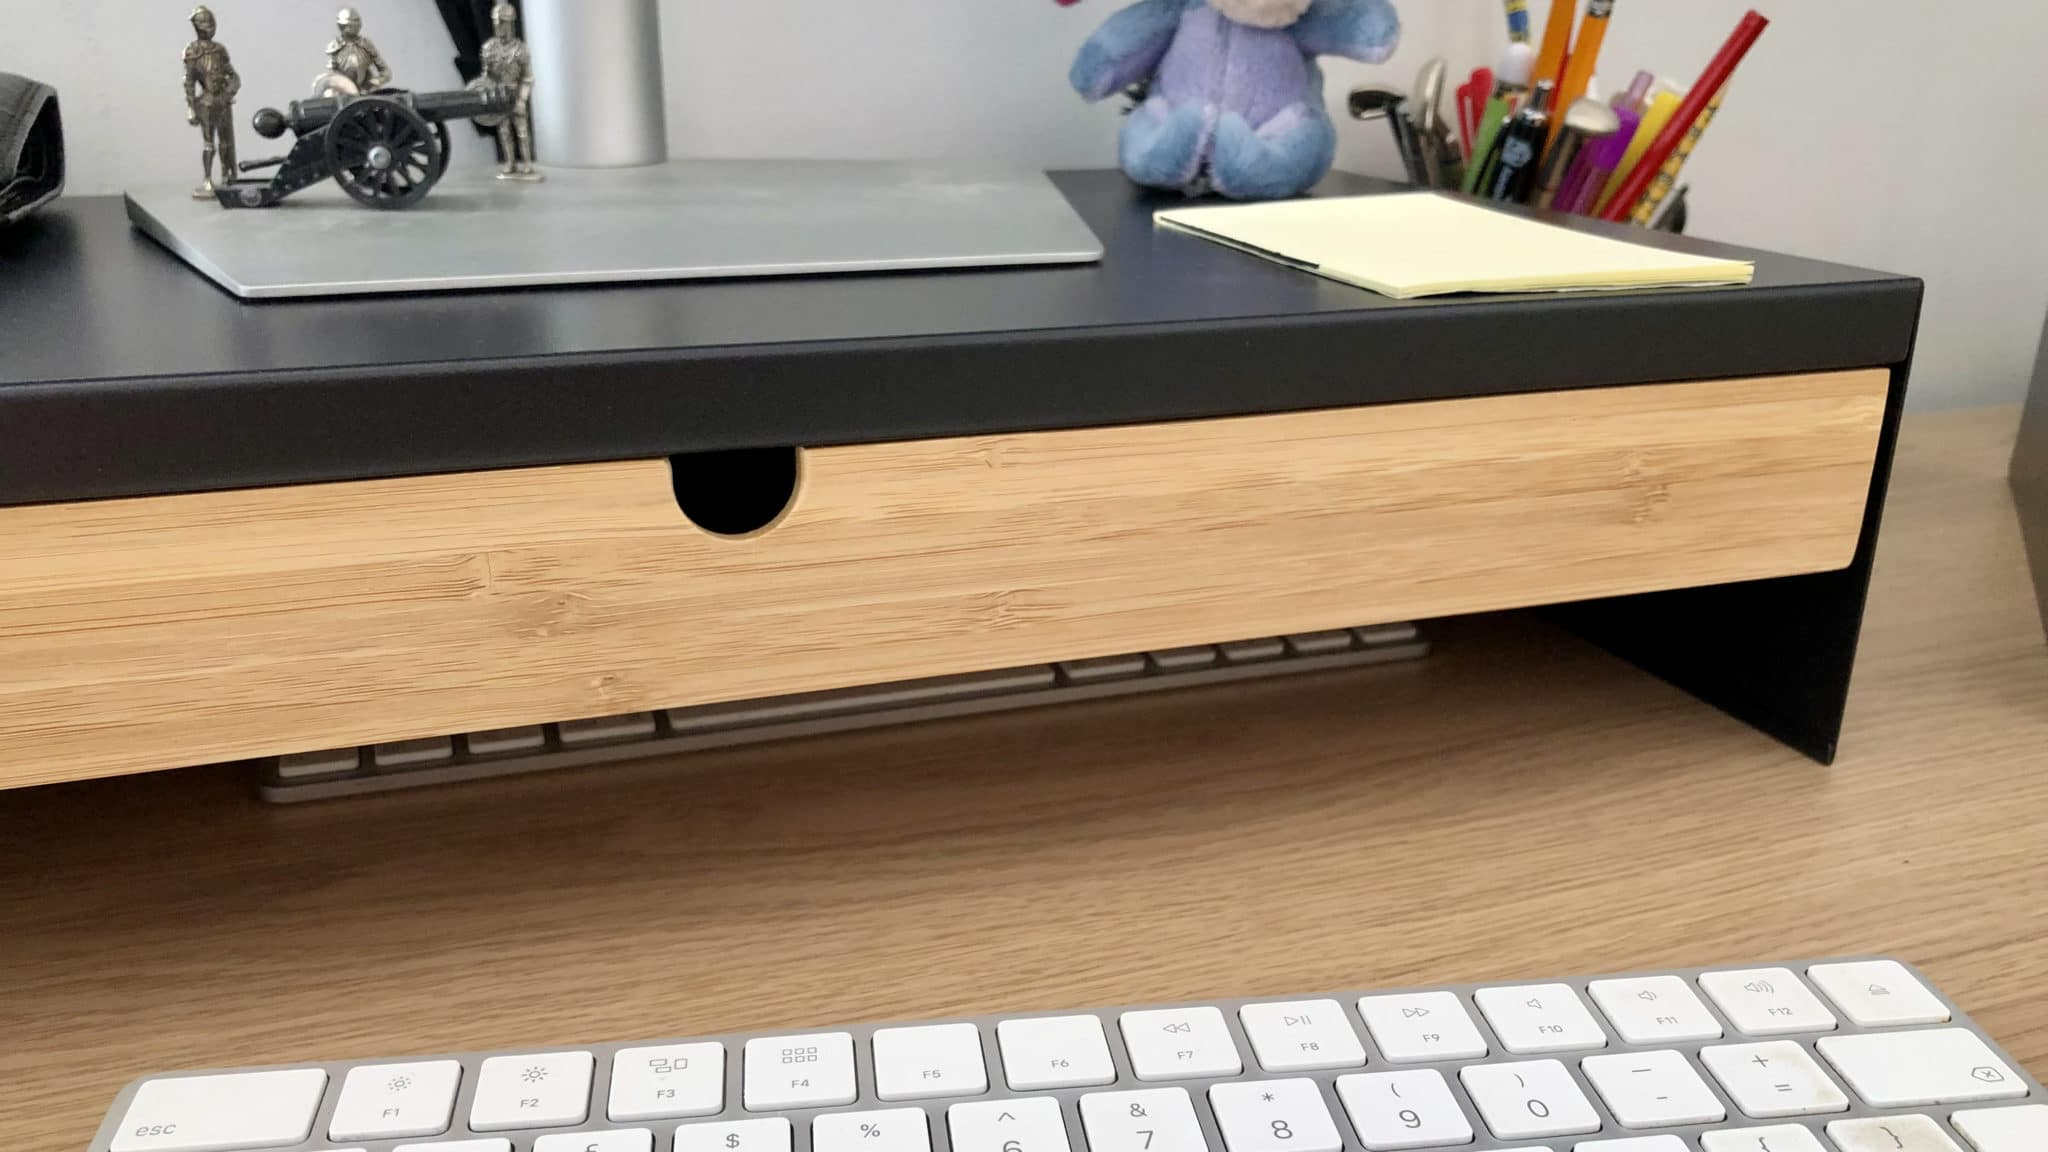 Close up of home office desk including keyboard and monitor stand.